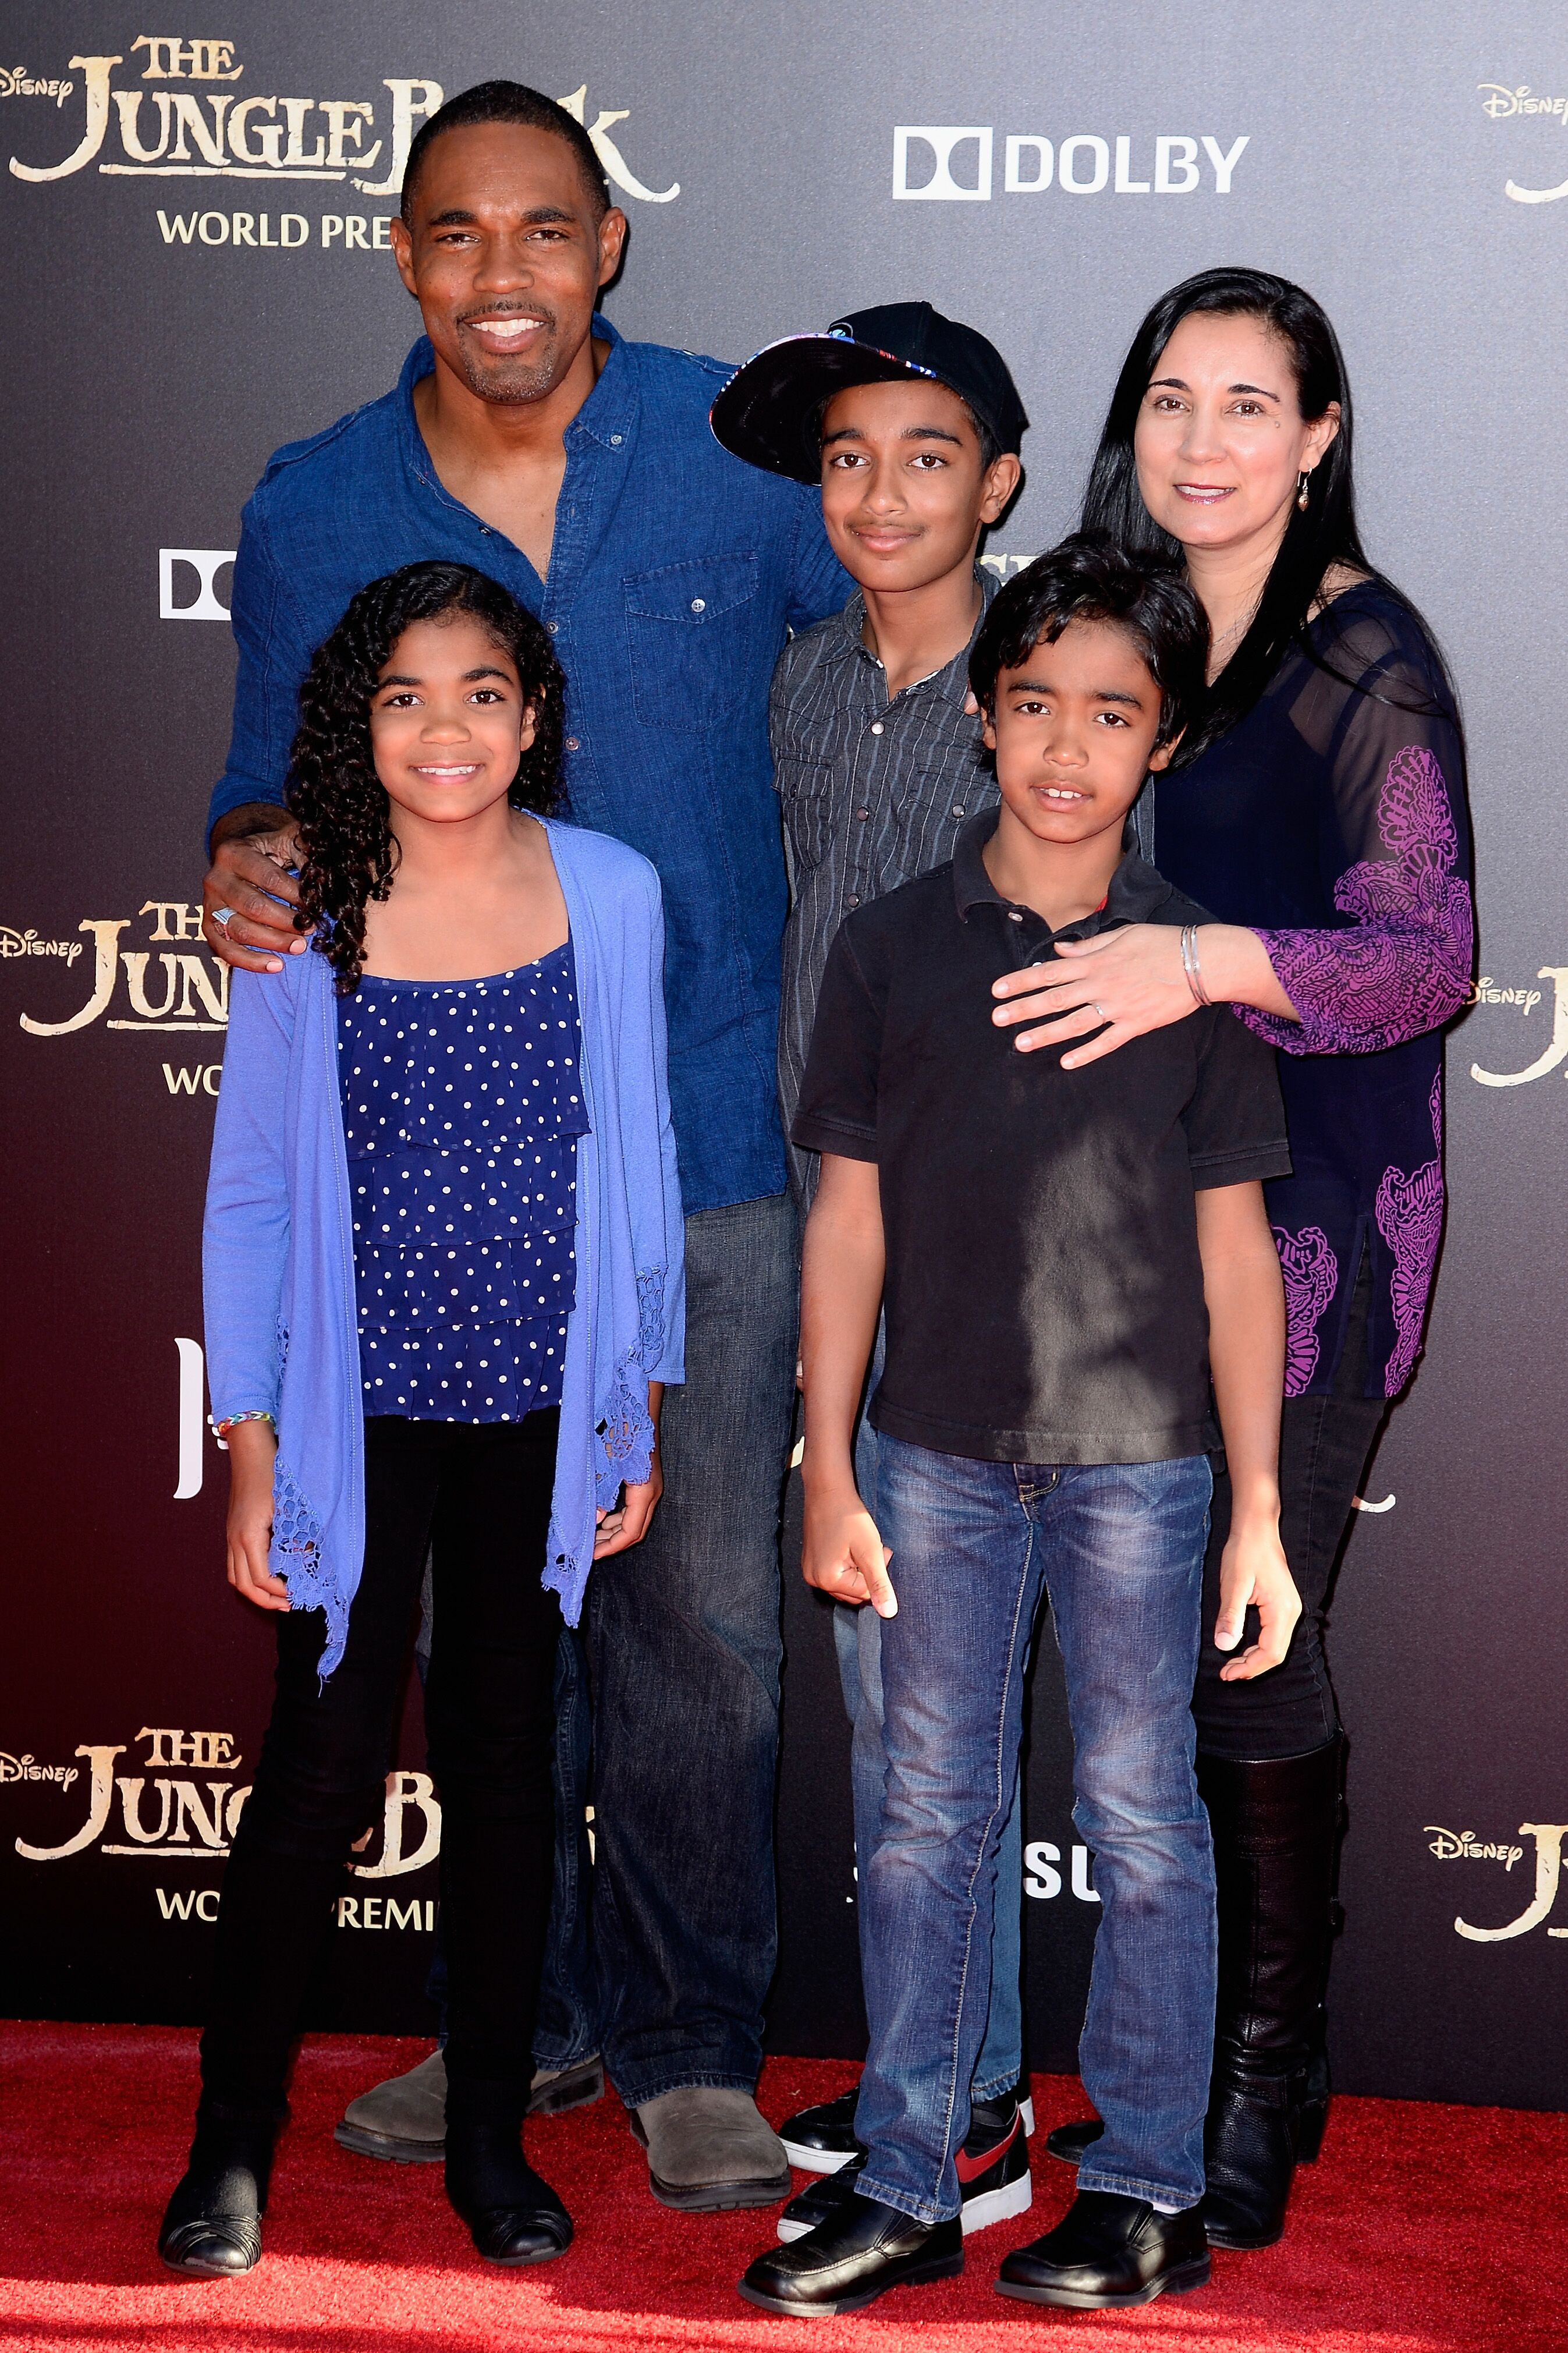 Jason George with wife Vandana Khanna and children Jasmine George, Arun George, Nikhil George, at the El Capitan Theatre on April 4, 2016 in Hollywood, California. | Source: Getty Images